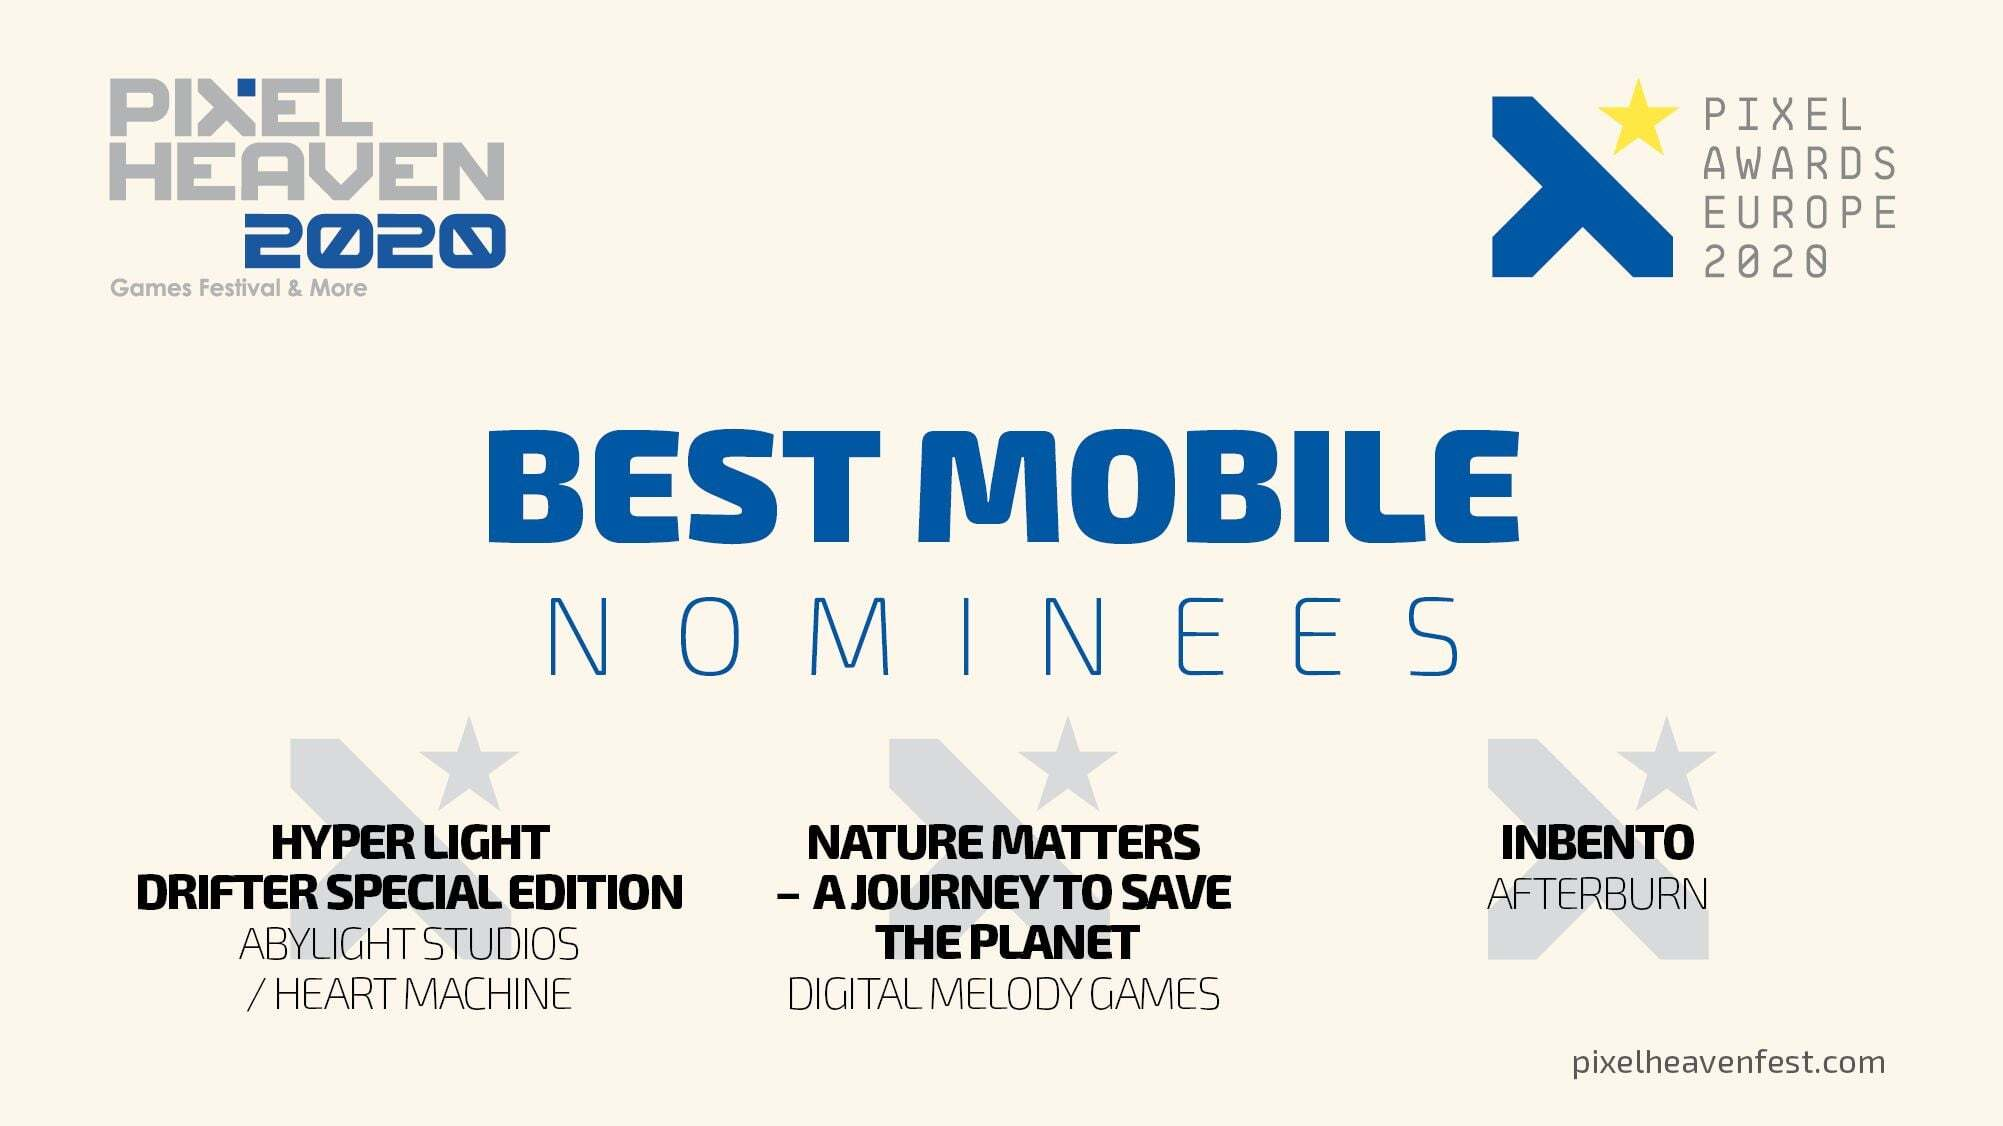 Nature Matters - A Journey To Save The Planet nominated for Best Mobile / Pixel Awards Europe 2020